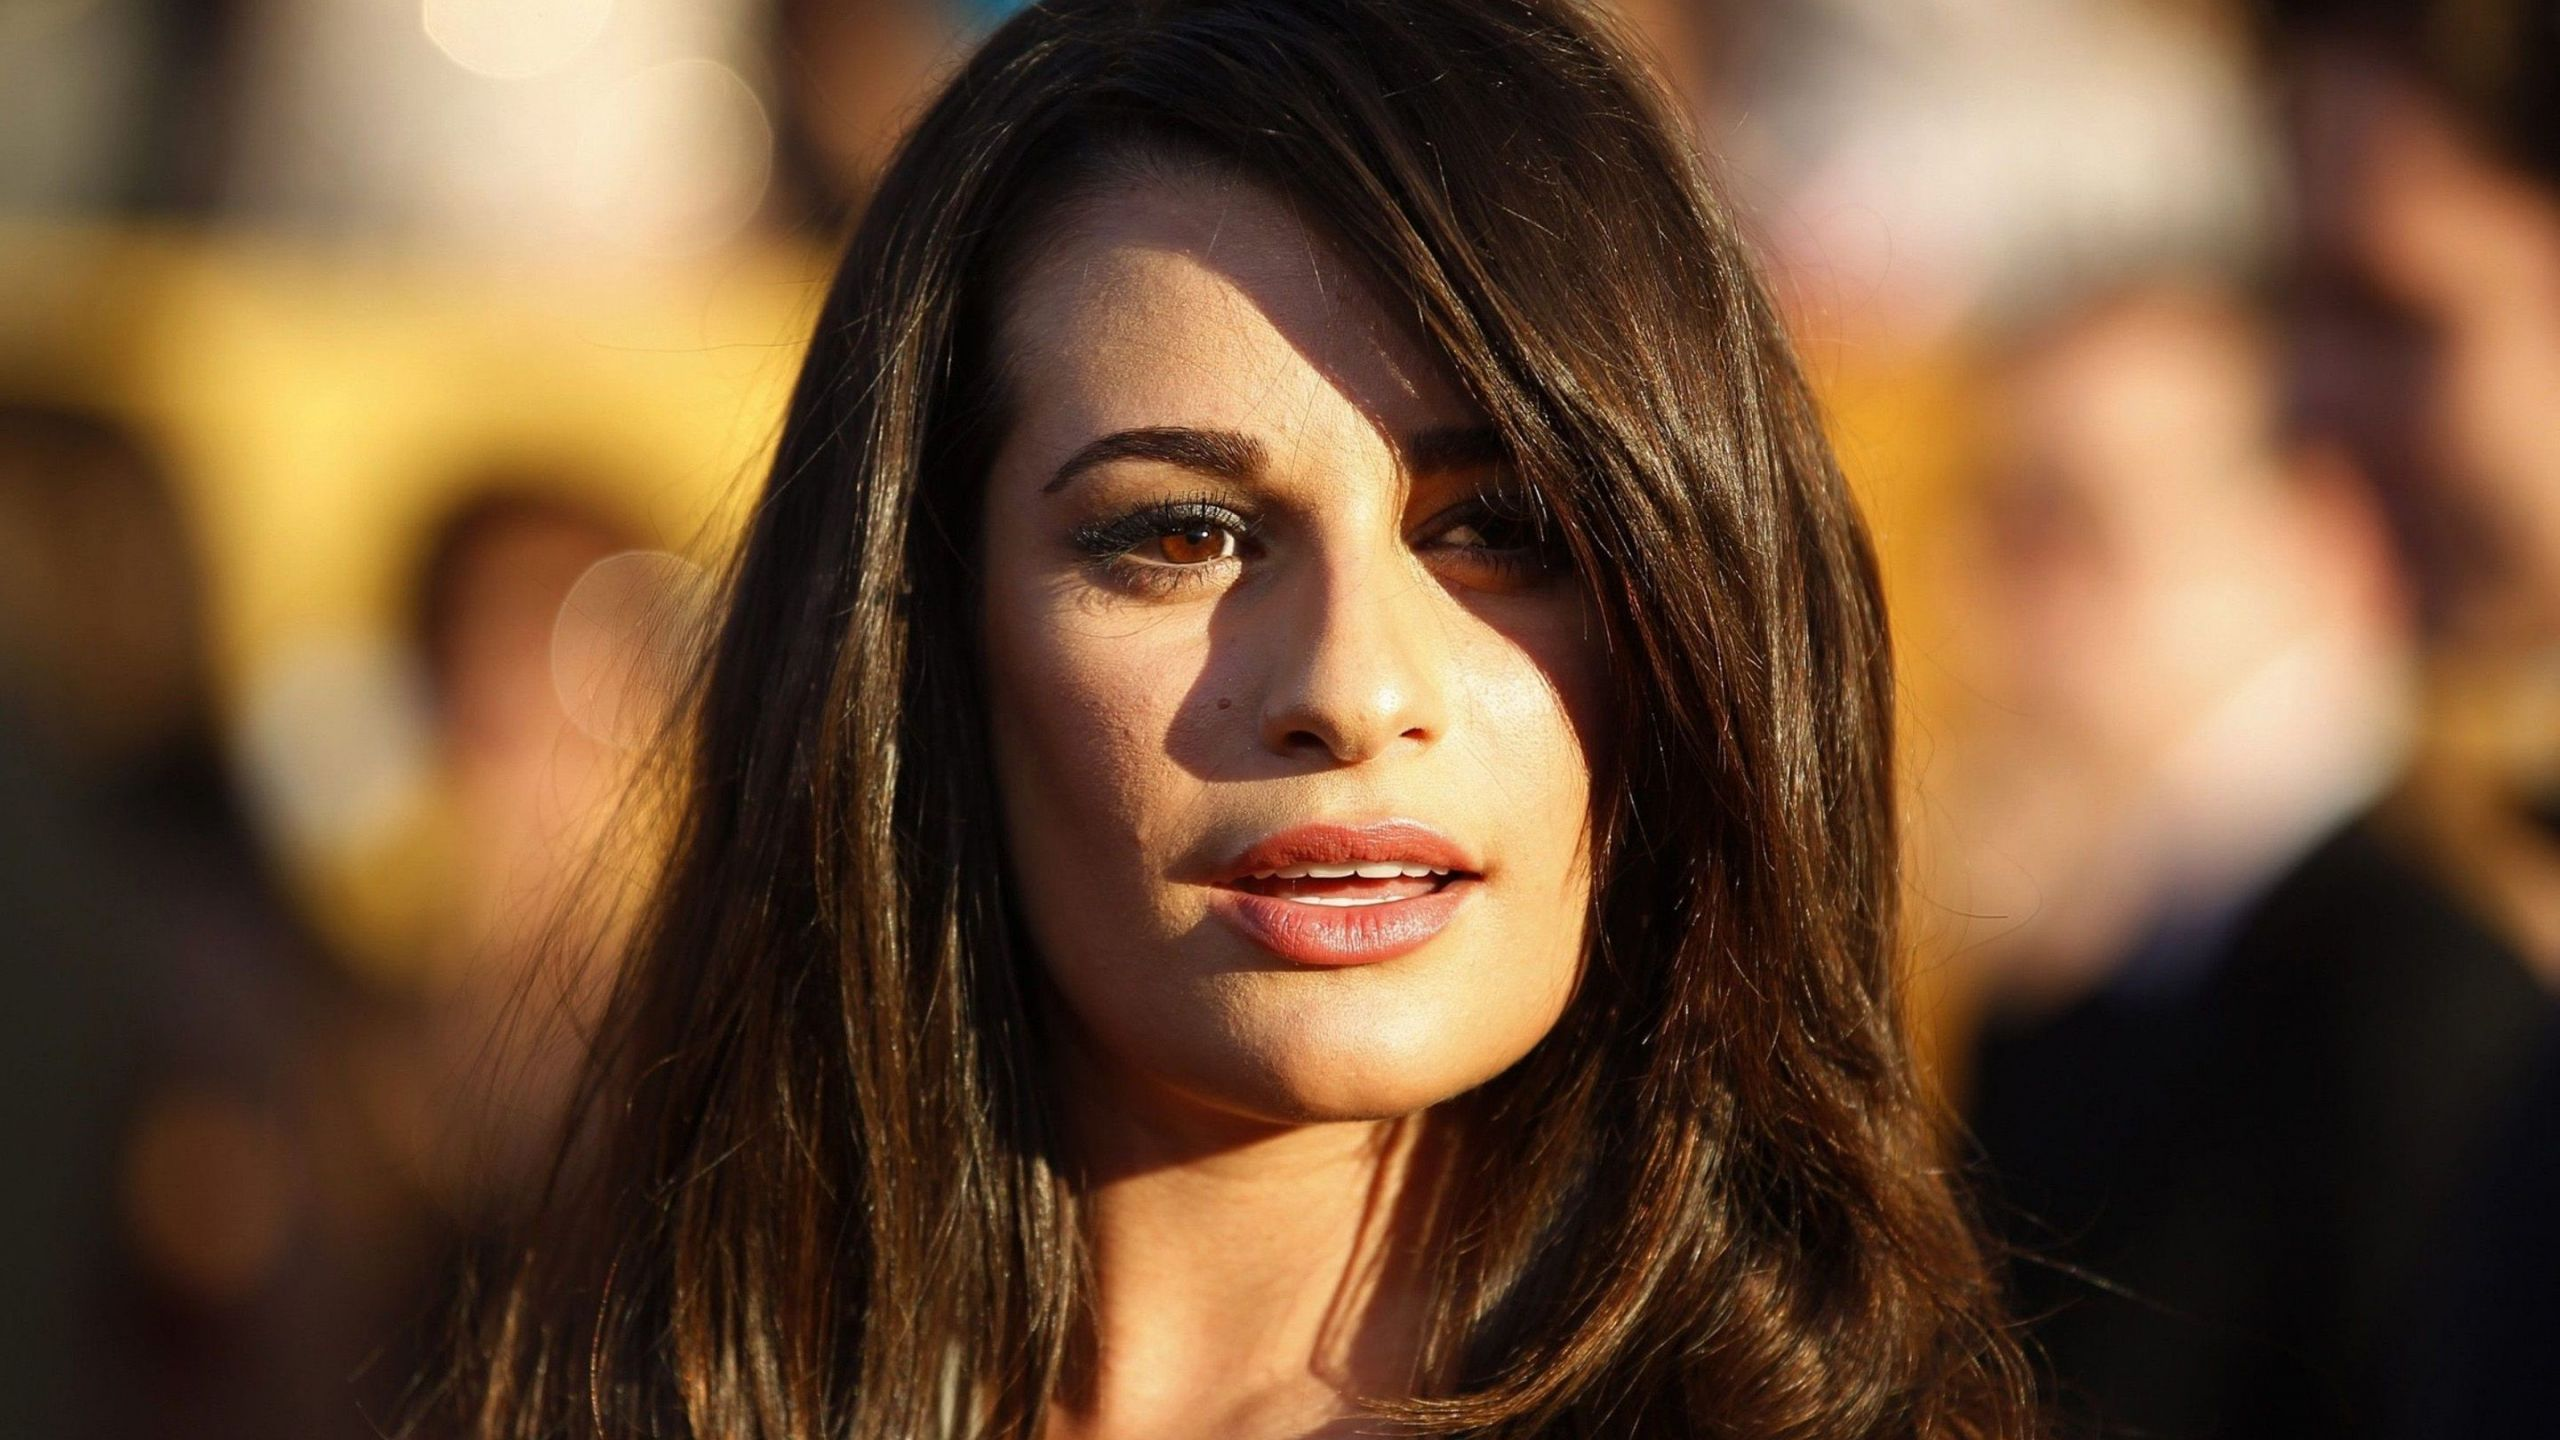 Lea michele cute face stills